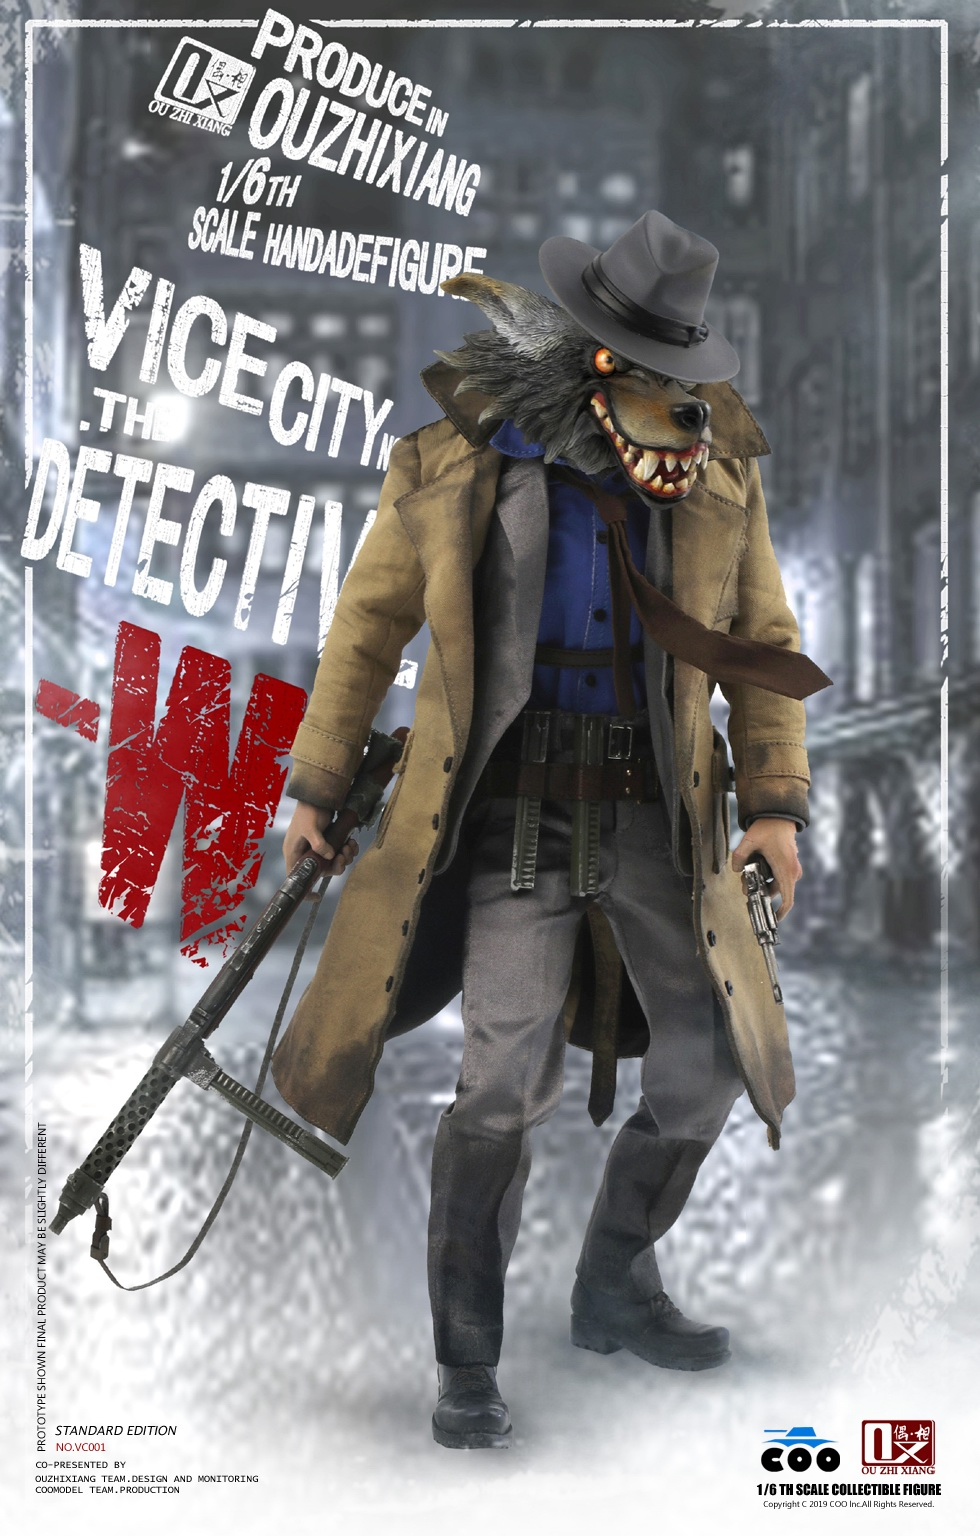 DetectiveW - NEW PRODUCT: COOMODEL X Even: 1/6 Vice City - Detective W [Standard Edition & Collector's Edition] - Four-headed configuration 20262810